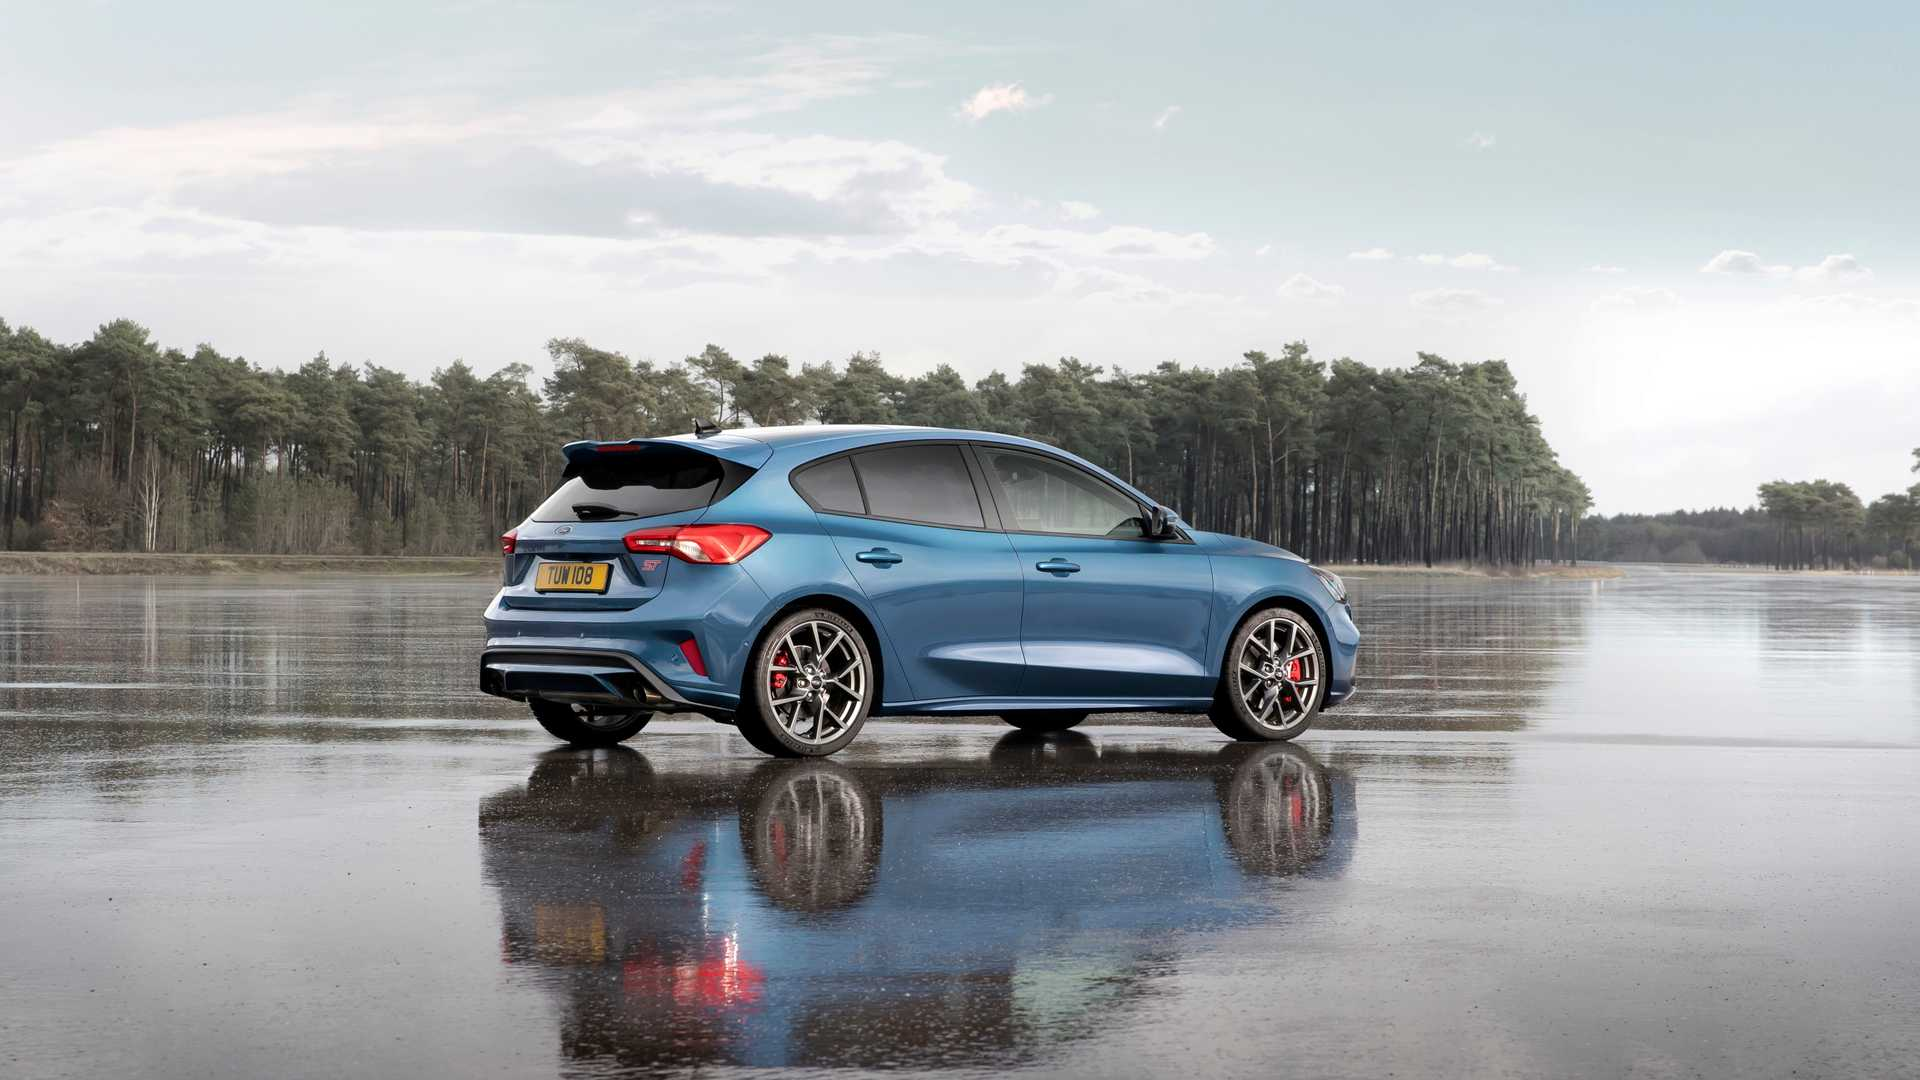 52 All New 2019 Ford Focus Rs St Picture